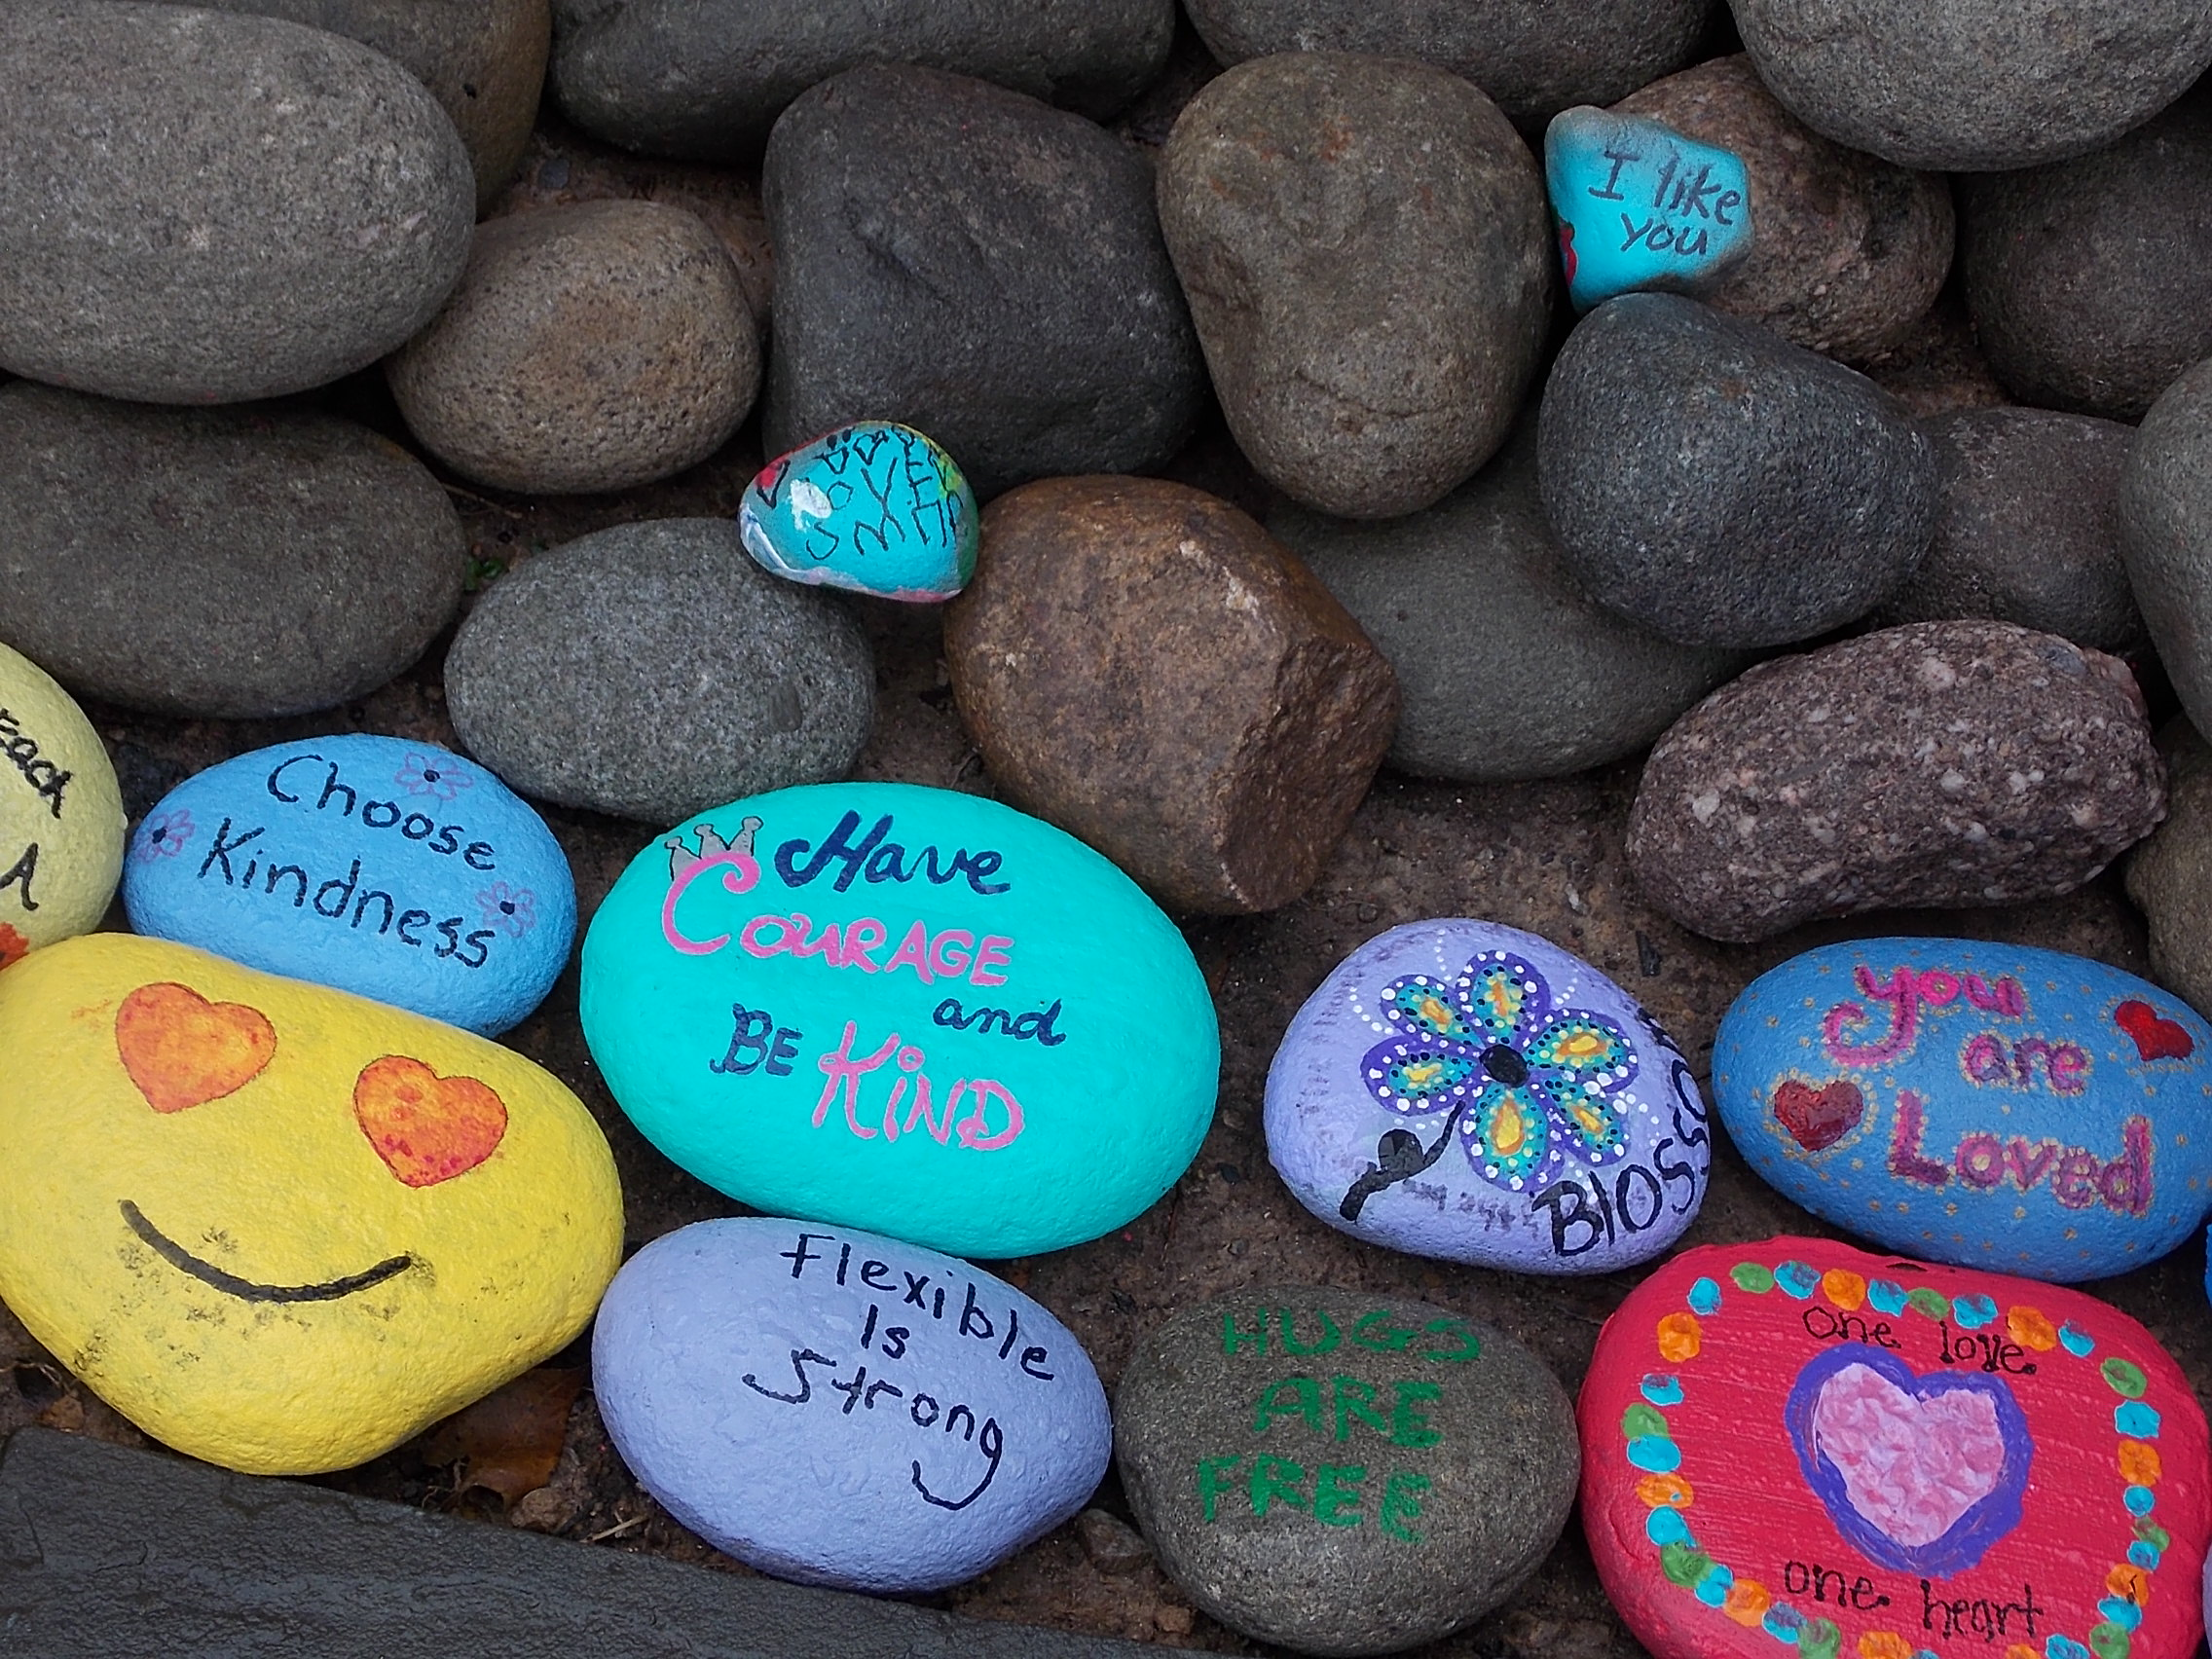 colorfully painted rocks with messages of kindness